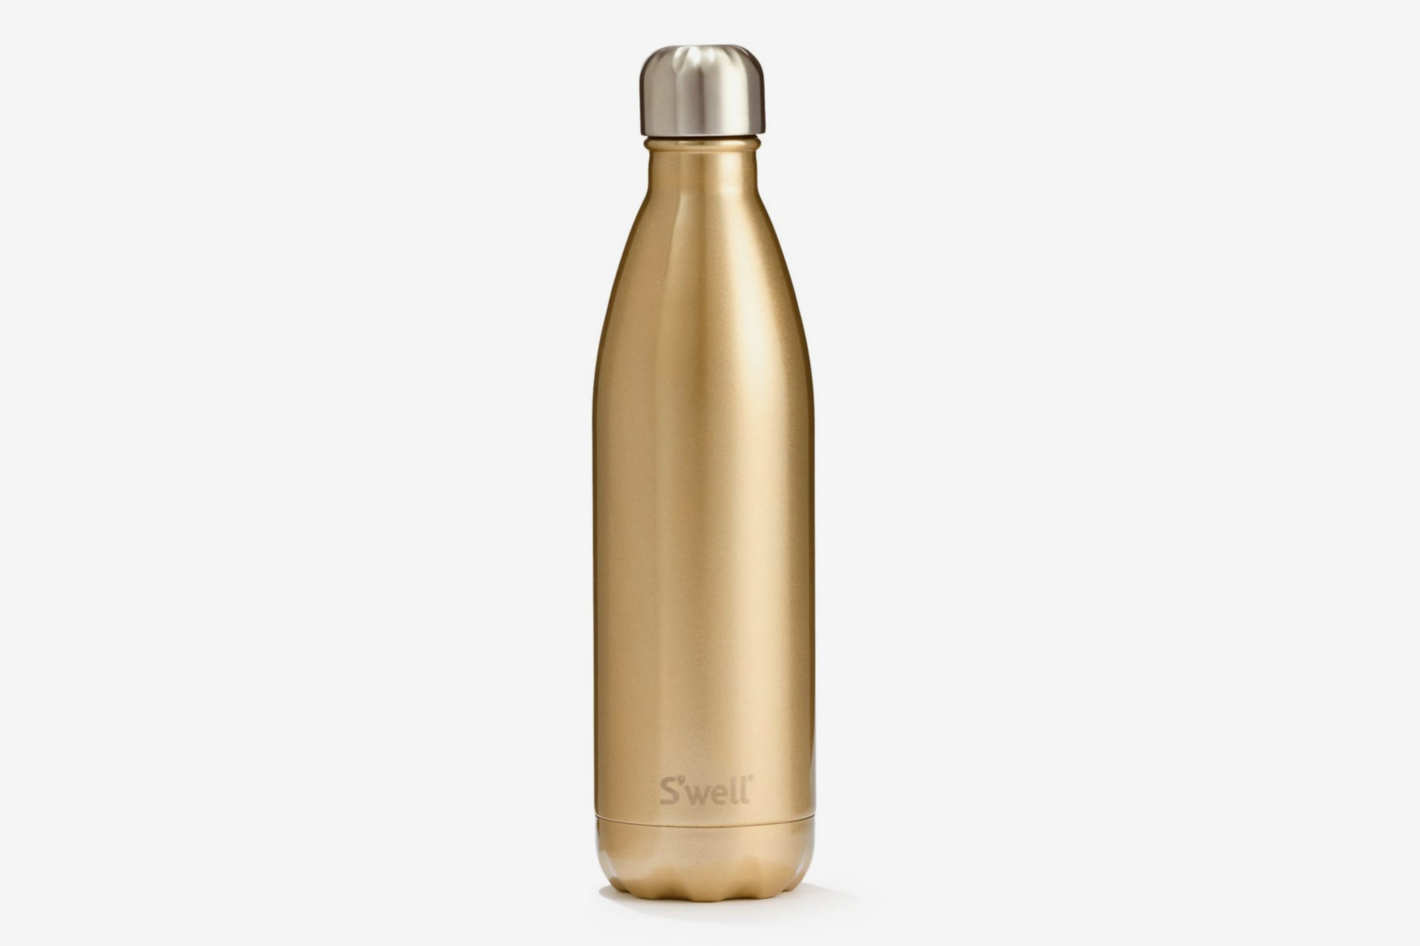 S'well Glitter Thermal Stainless Steel Water Bottle